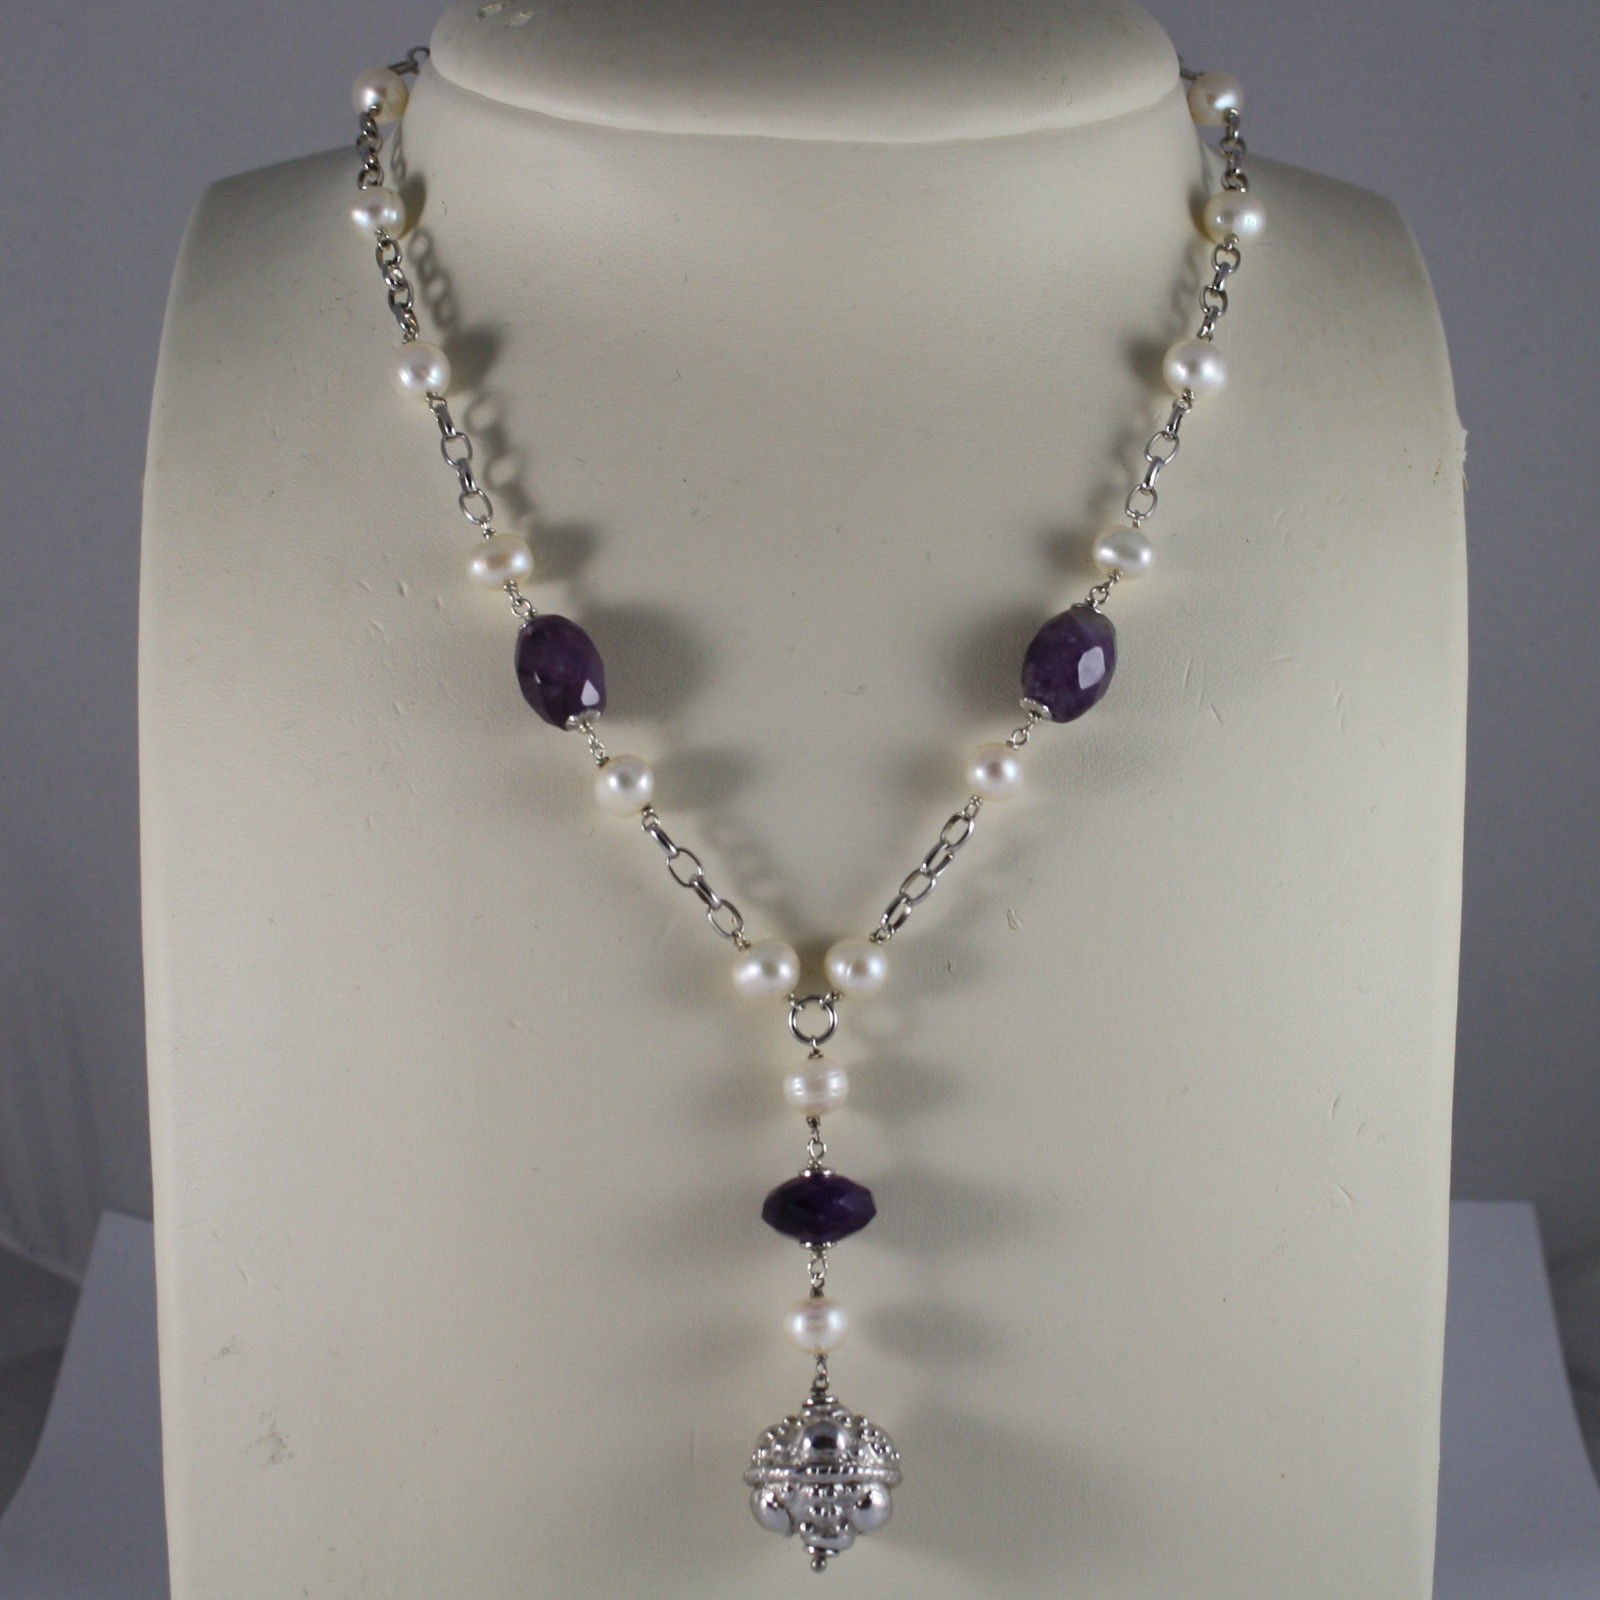 .925 SILVER RHODIUM NECKLACE WITH PURPLE AMETHYST, WHITE PEARLS AND PENDANT